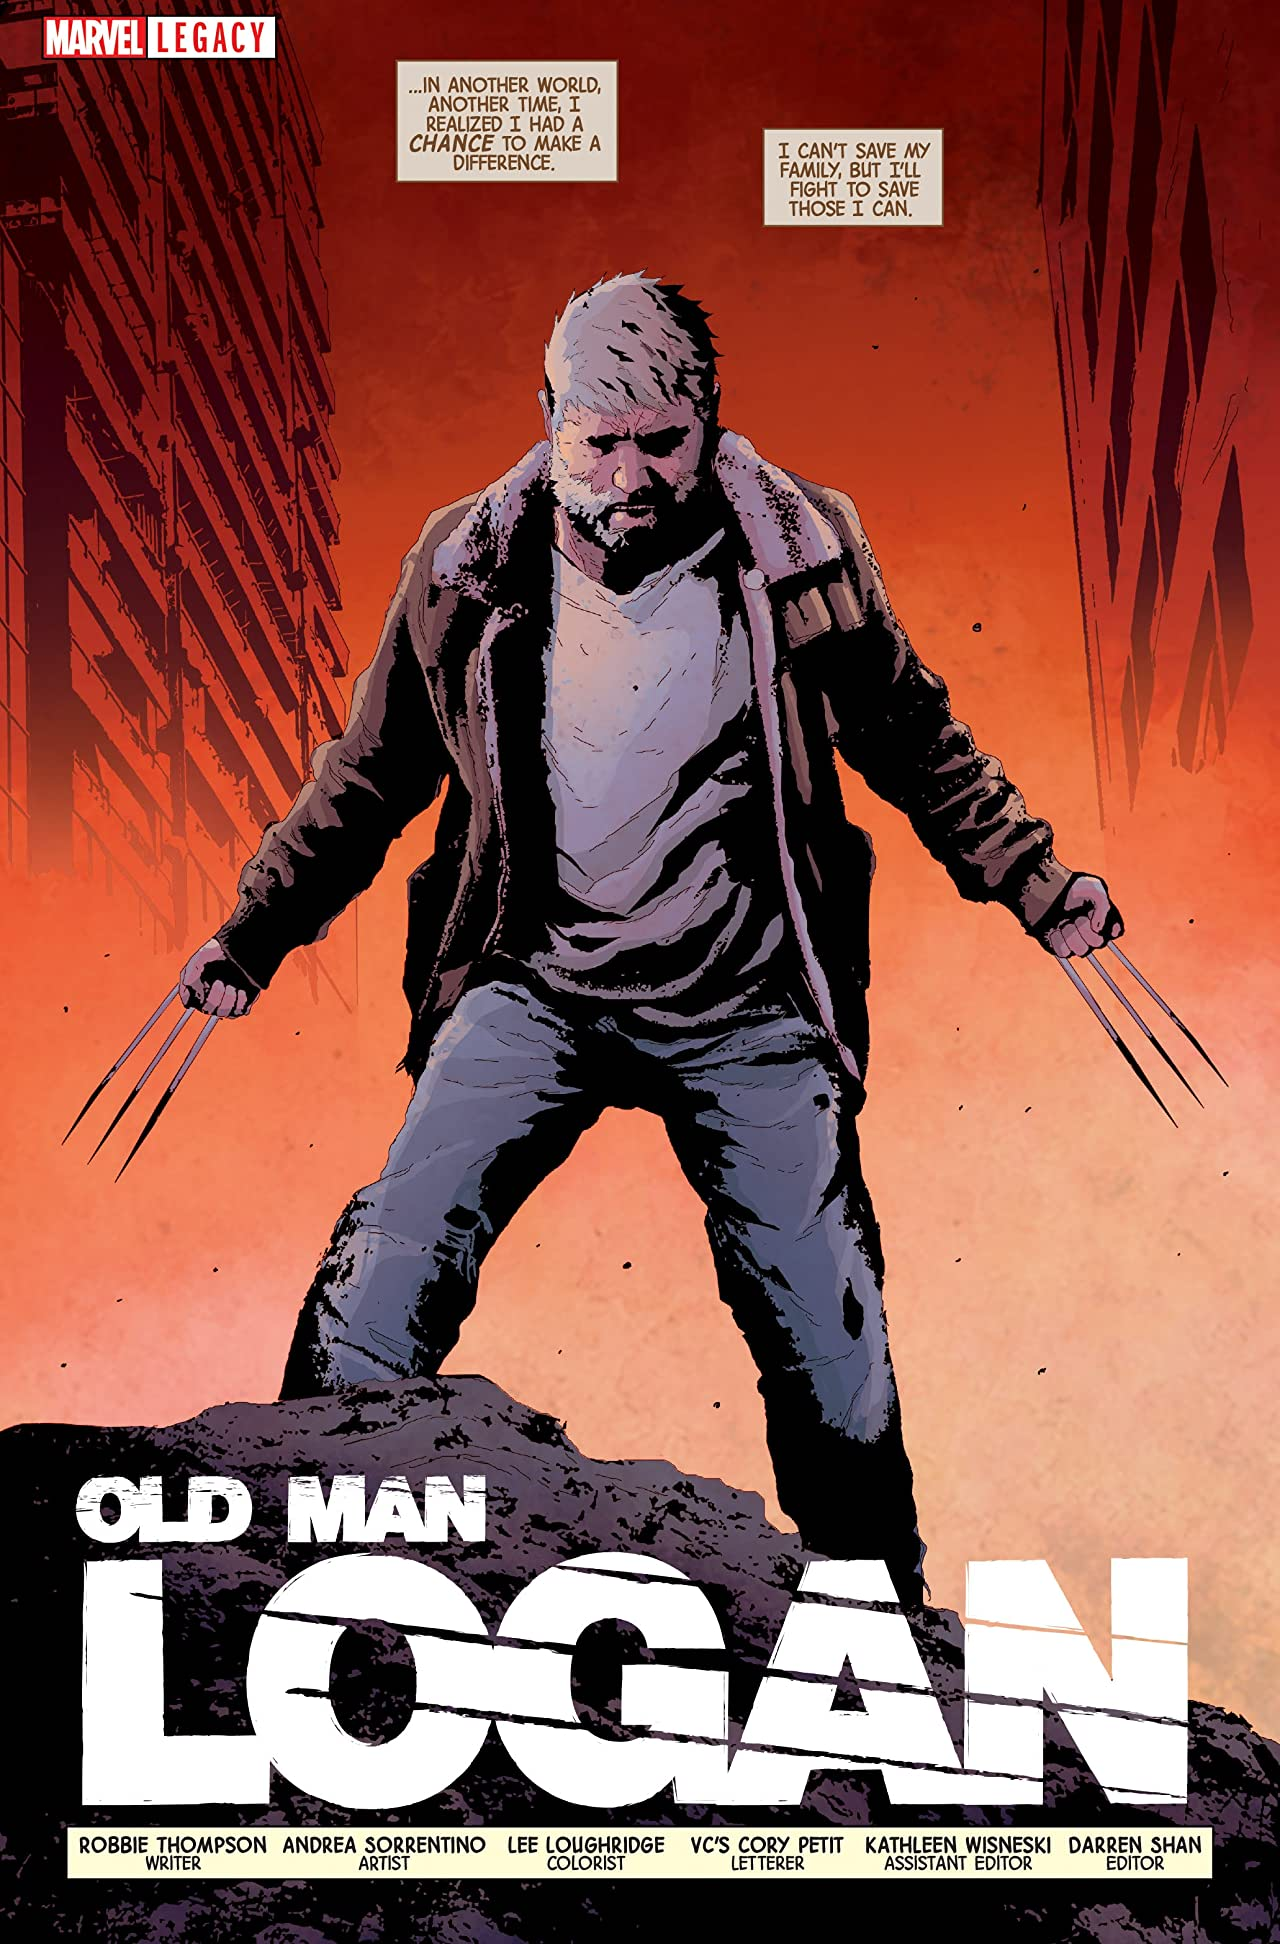 Old Man Logan - Marvel Legacy Primer Pages